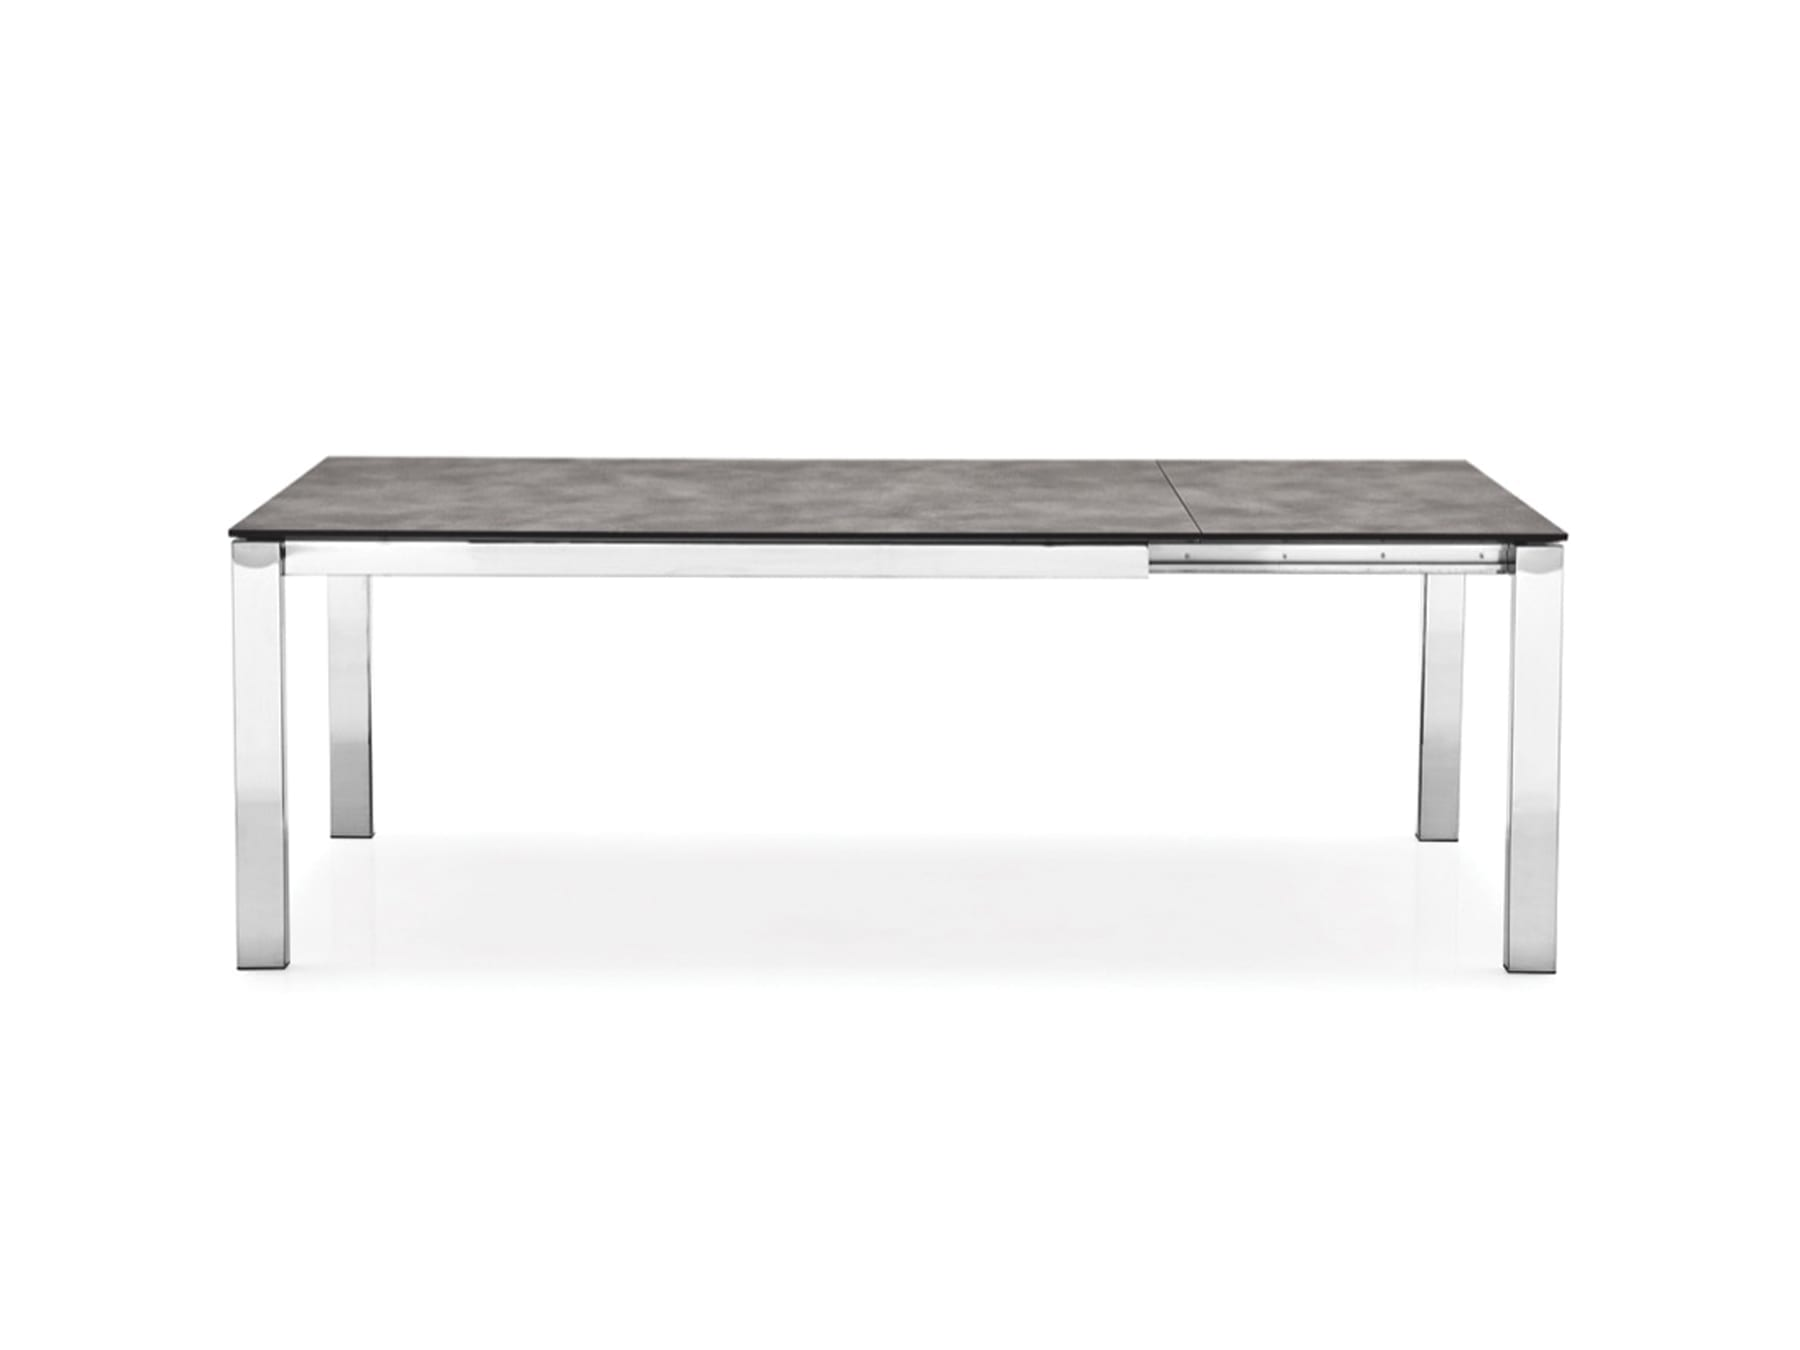 Calligaris baron dining table calligaris baron extension for Calligaris baron